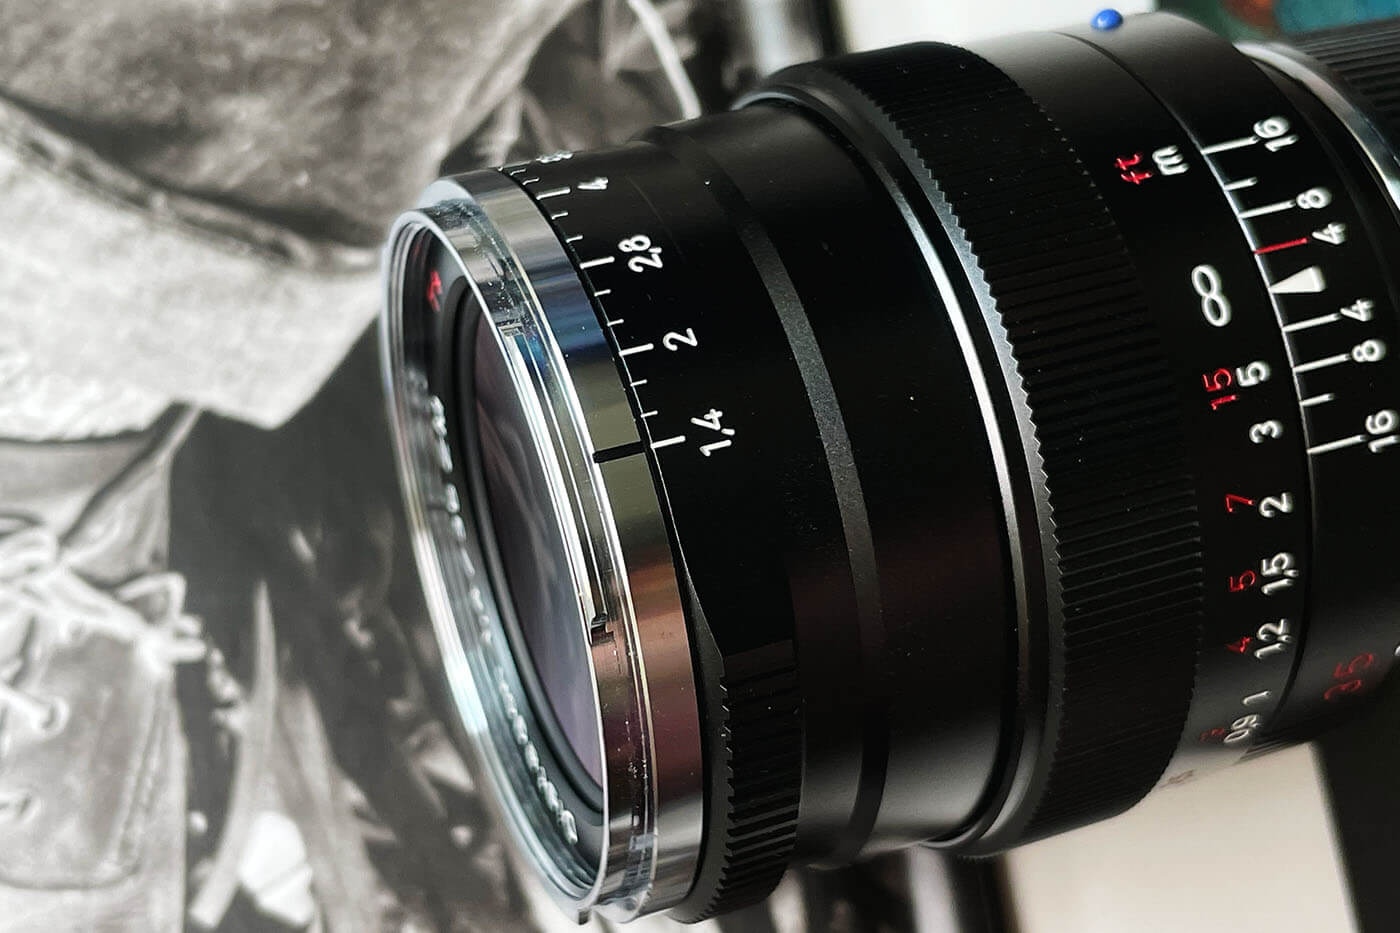 Lens-review-zeiss-distagon-35mm-f1.4-35-1.4-zm-m-mount-leica-wide-angle-street-character-optics-optical-barrel-construct-build-quality-aperture-ring